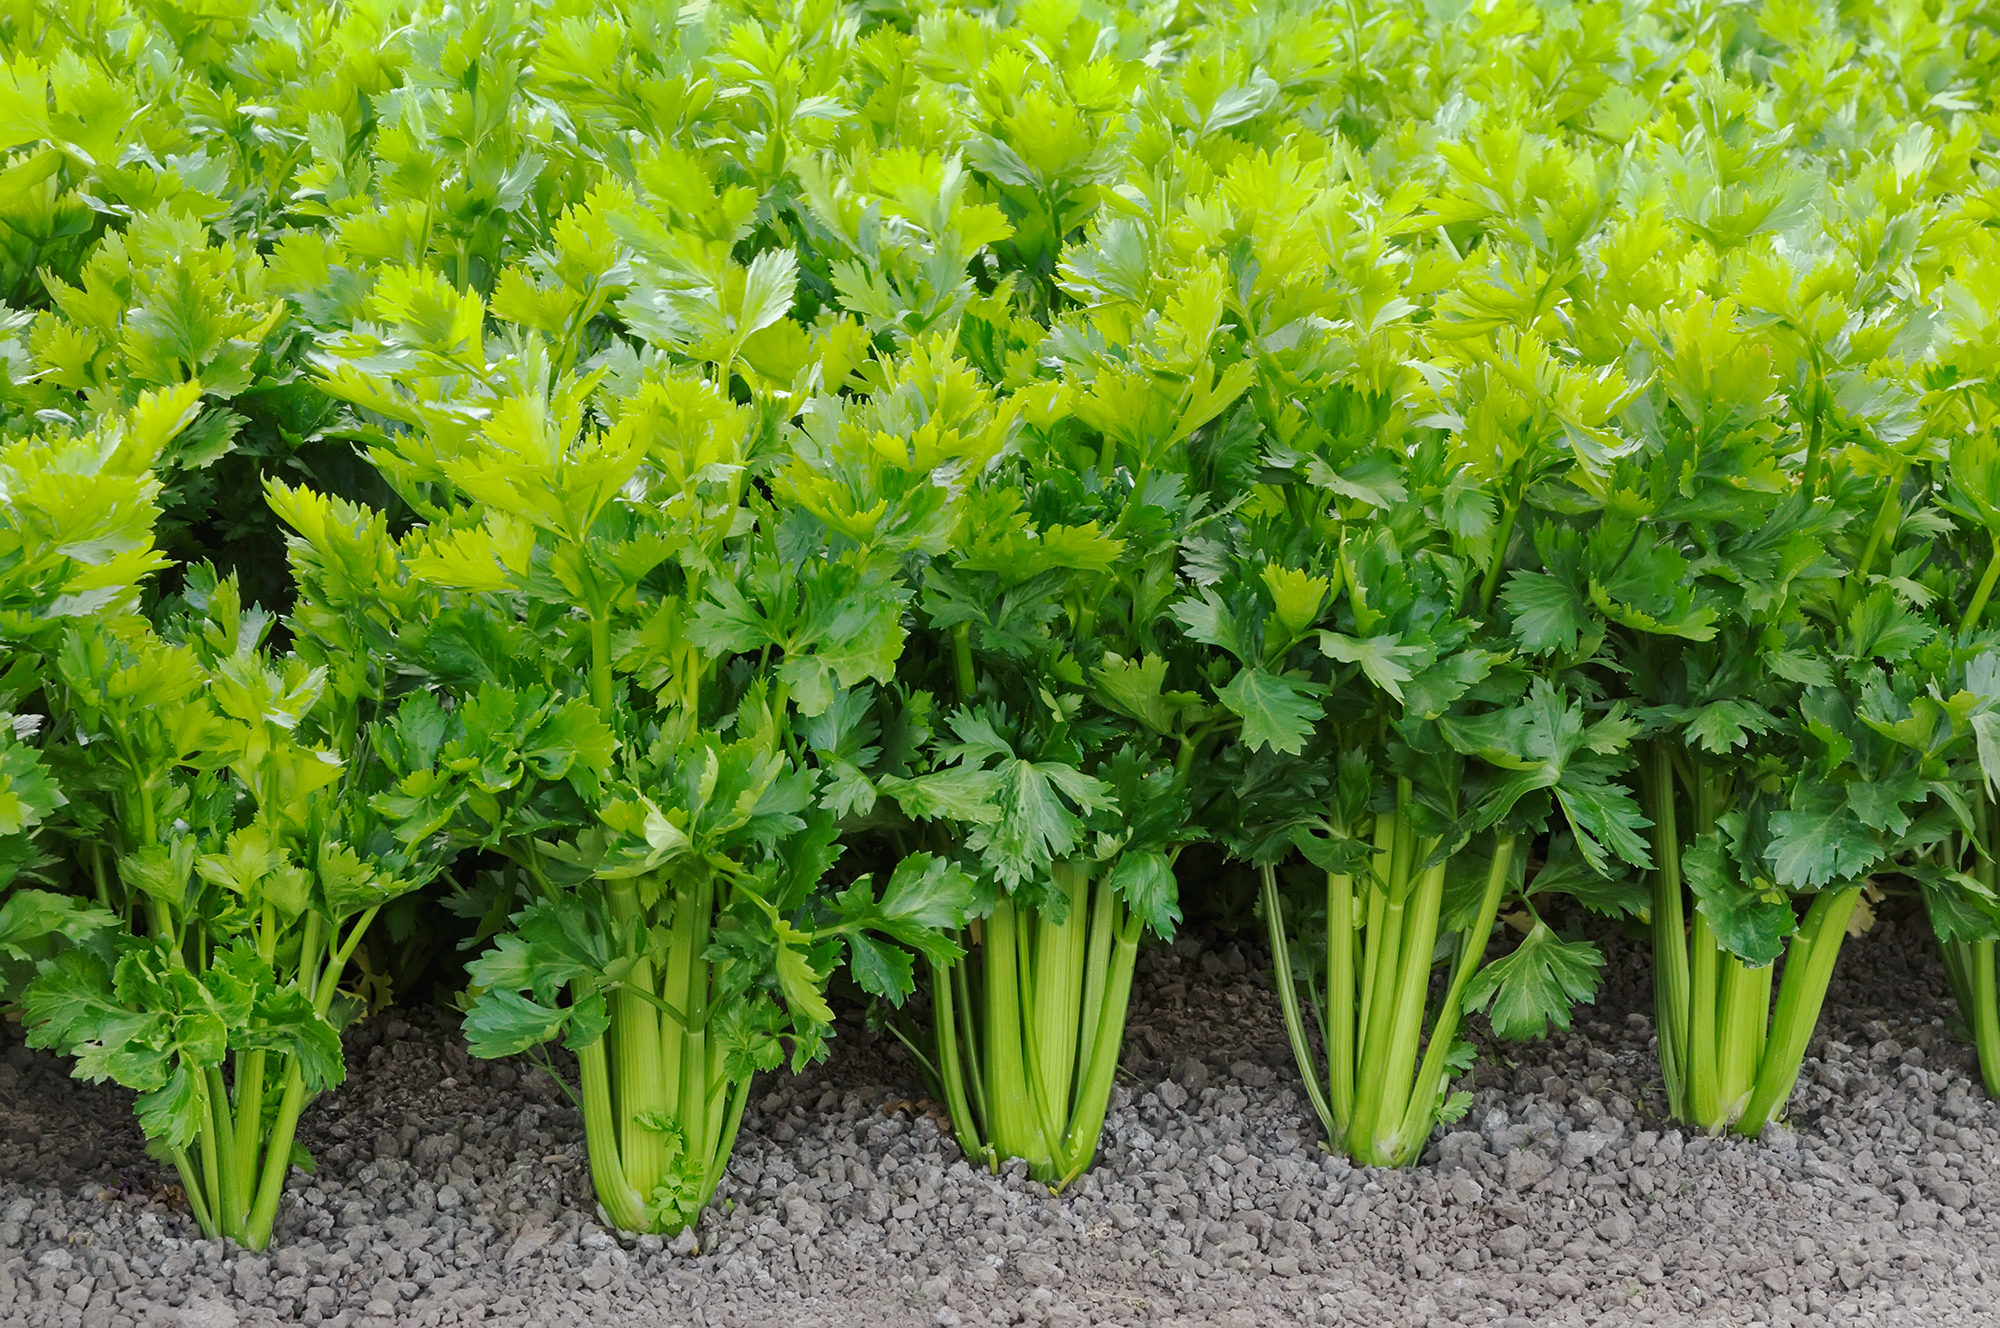 Why did humans start cultivating celery? It's low-calorie and, one might argue, low flavor. We asked some experts at the intersection of botany and anthropology to share their best guesses.